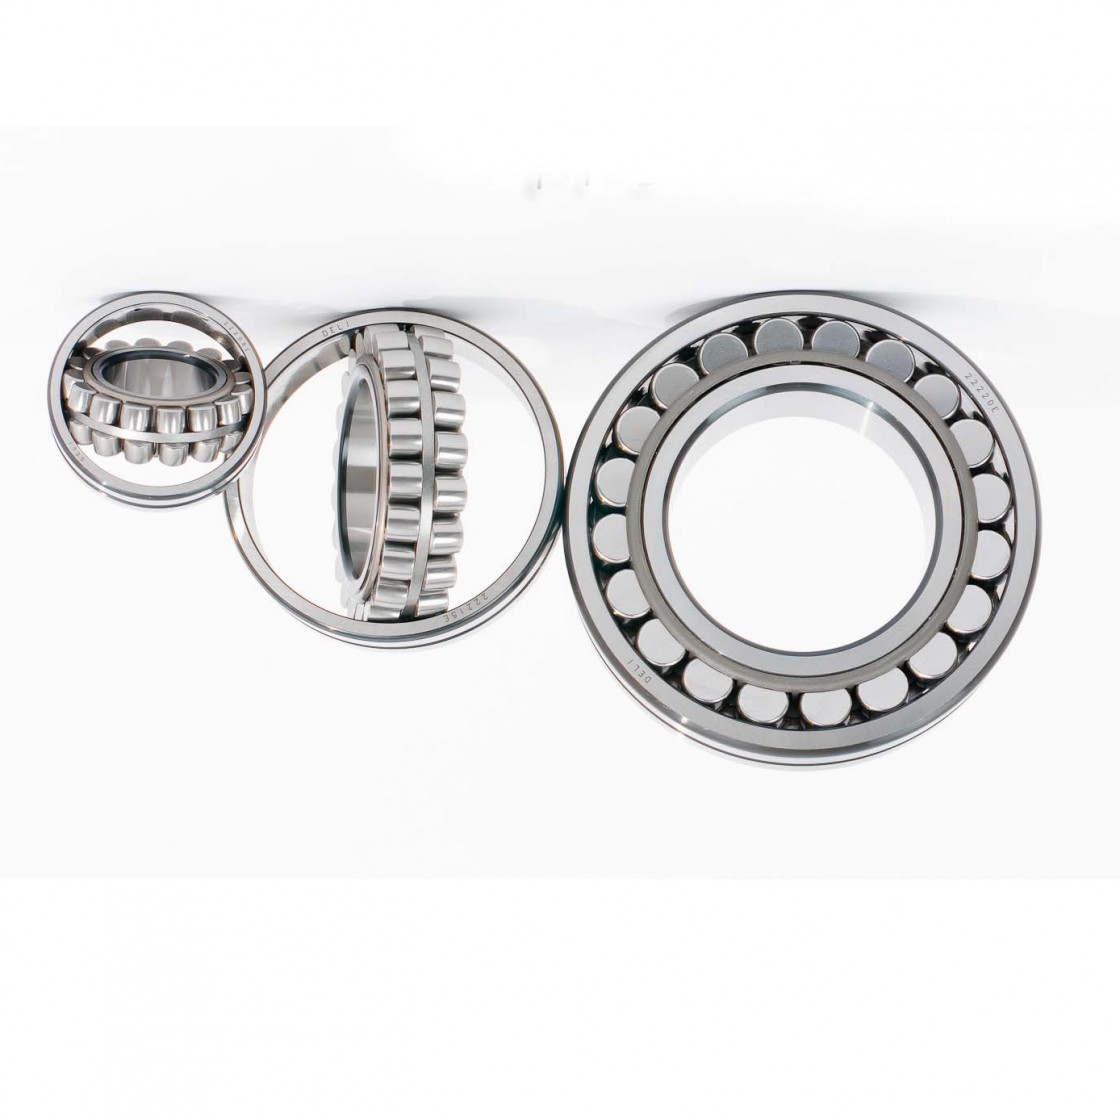 32, 33 Series Double Row Angular Contact Ball Bearing 3205 3206 3207 3208 3209 a, a-2z, a-2RS1, a-2ztn9/Mt33, Atn9, a-2RS1tn9/Mt33